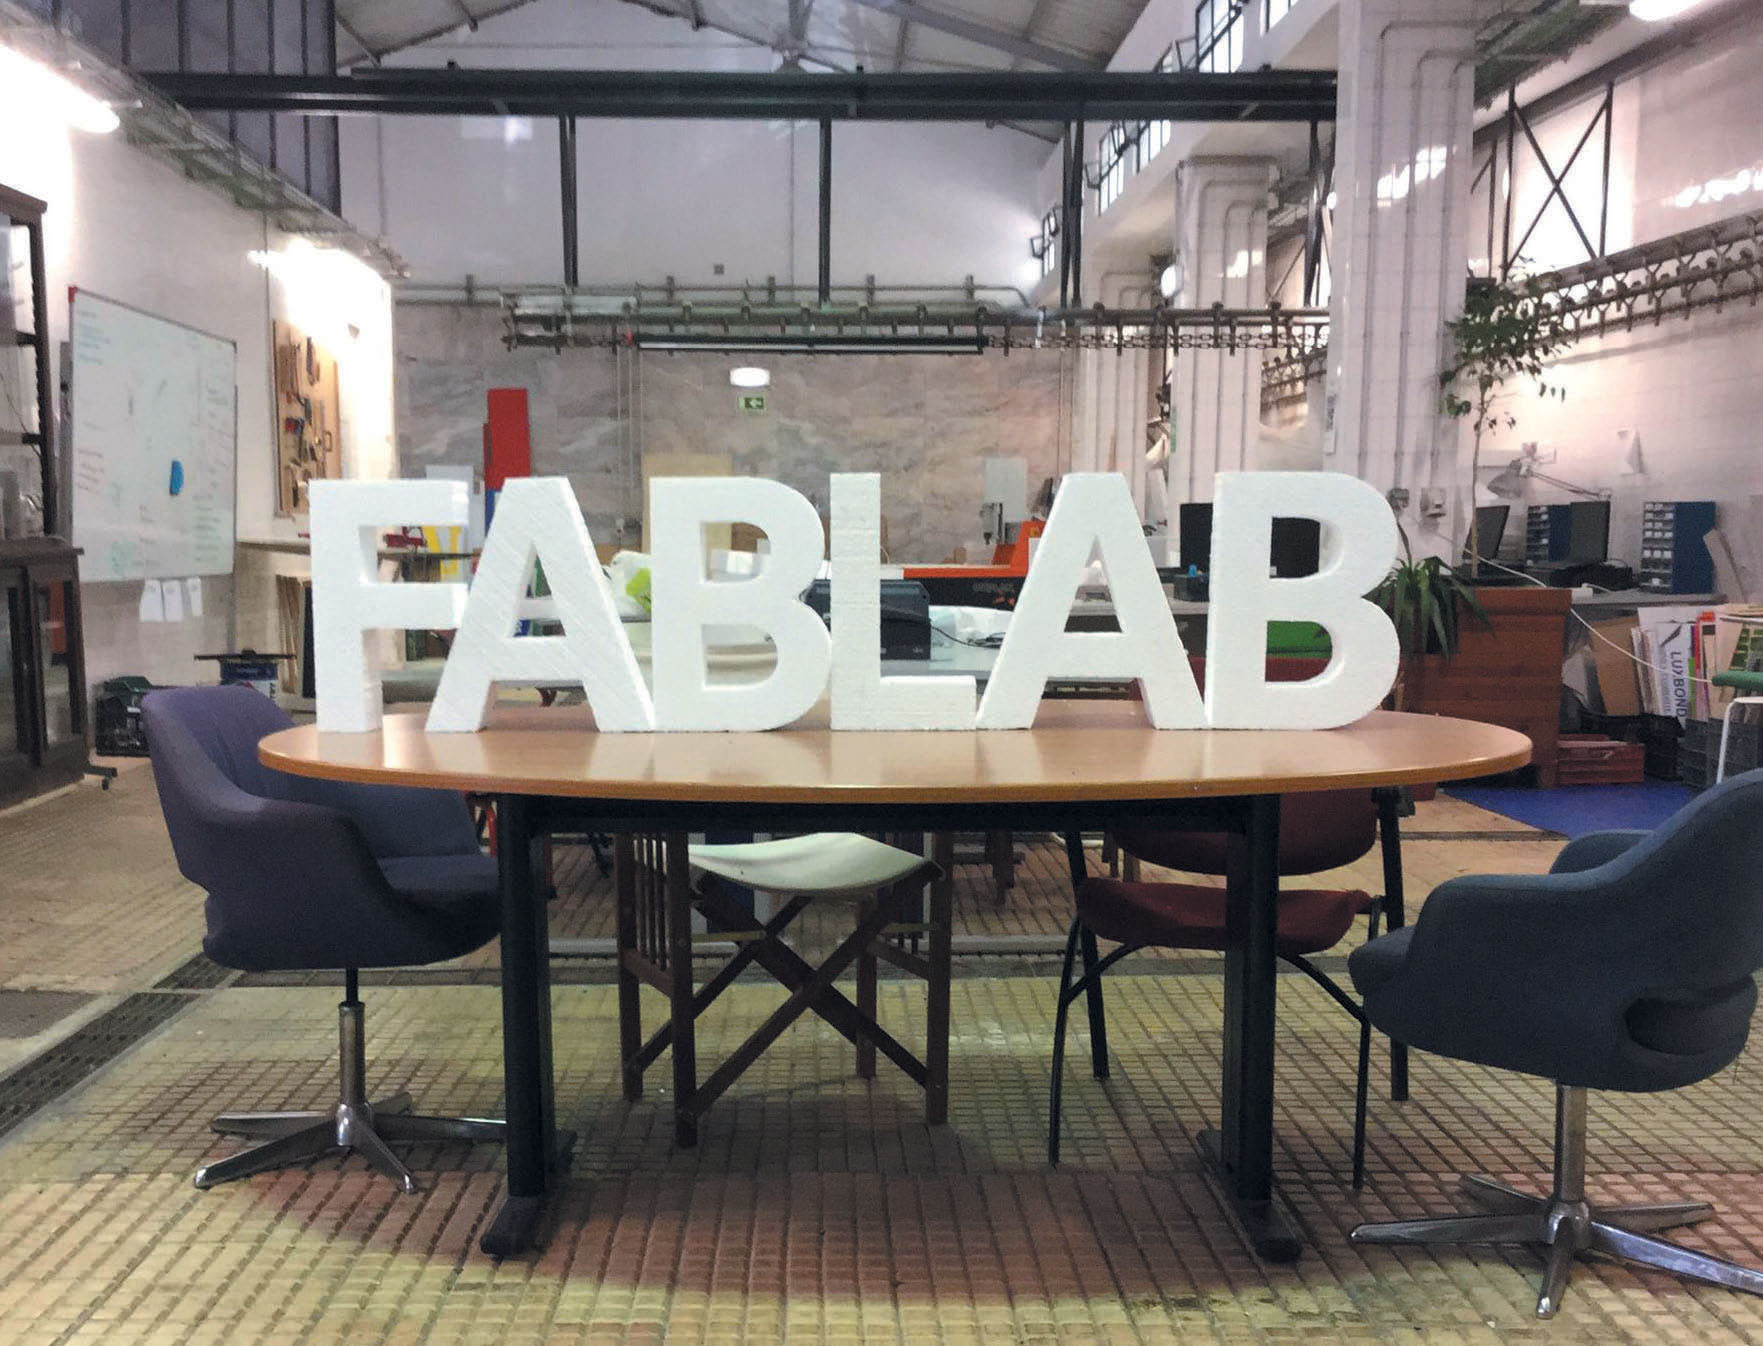 Fablab Lisboa When A Municipality Fosters Grassroots Technological Laser Cutting Circuit Board Mockups Makespace Url